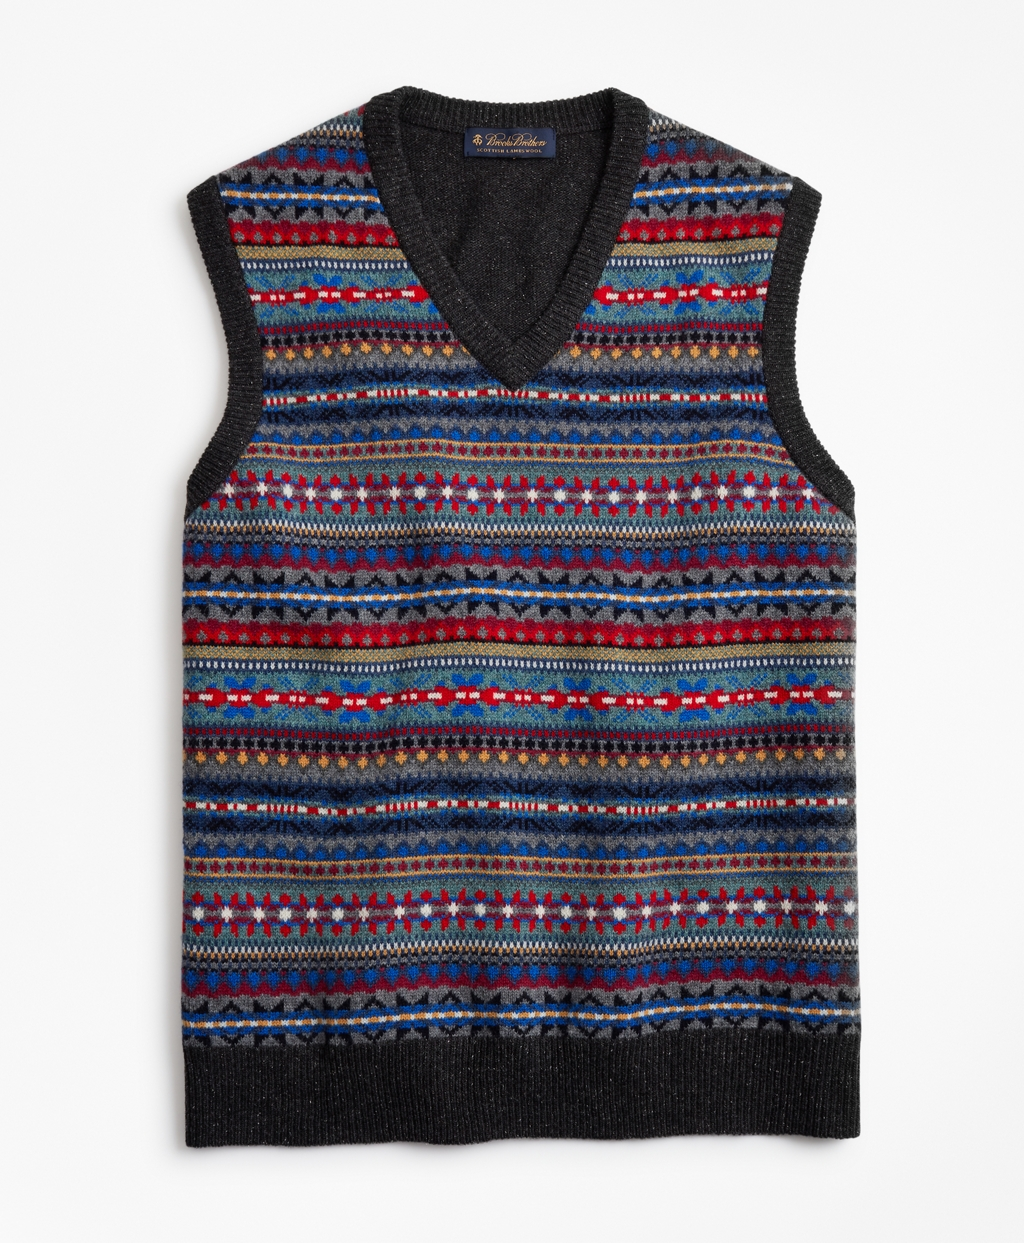 Retro Clothing for Men | Vintage Men's Fashion Brooks Brothers Mens Fair Isle Vest $89.60 AT vintagedancer.com